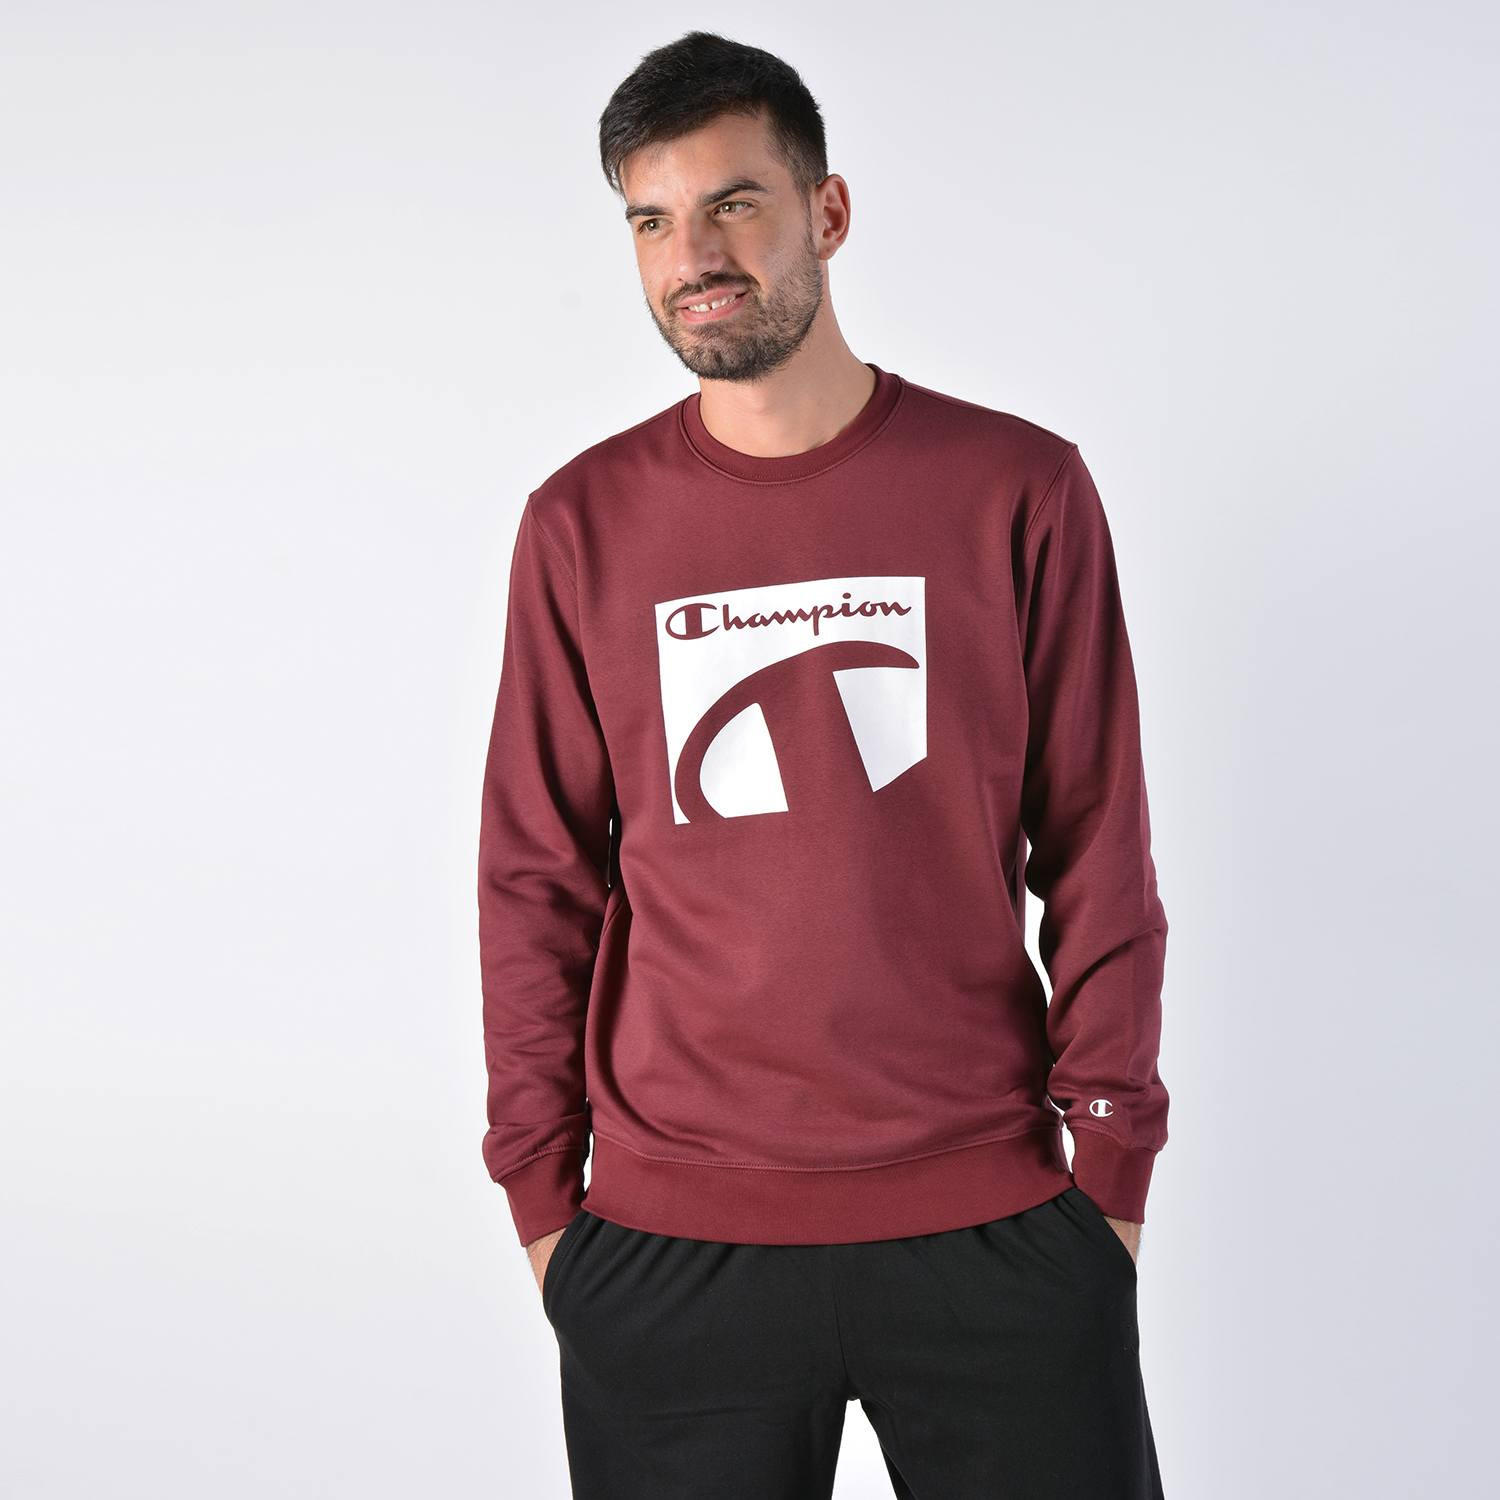 Champion Crewneck Sweatshirt (9000038419_41650)